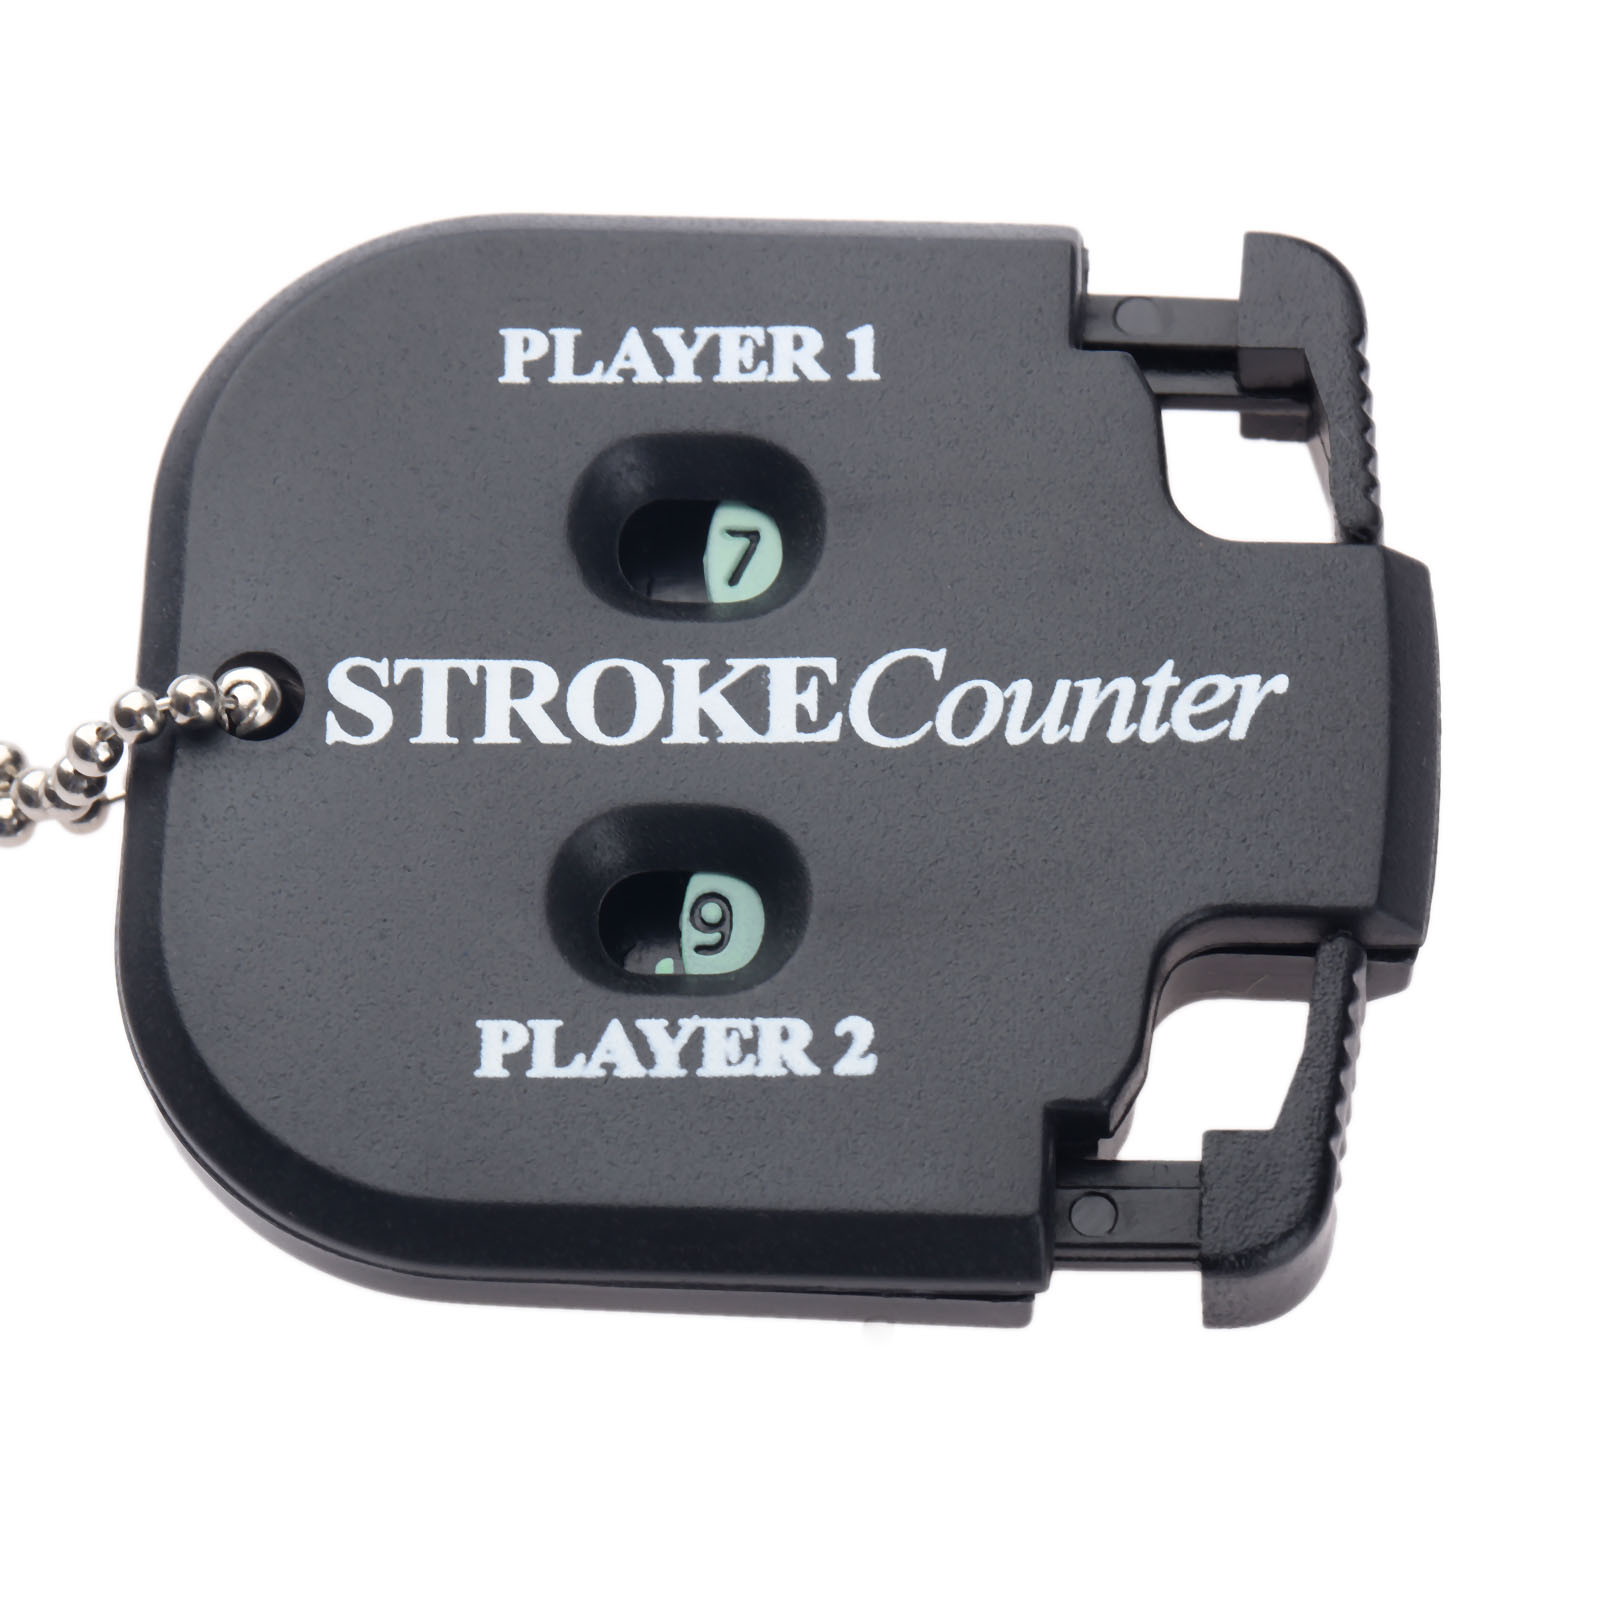 Golf Shot Count Stroke Putt Score Counter Compteur Two Digits Scoring Keeper With Key Chain Golf Training Aids Golf Accessories 5